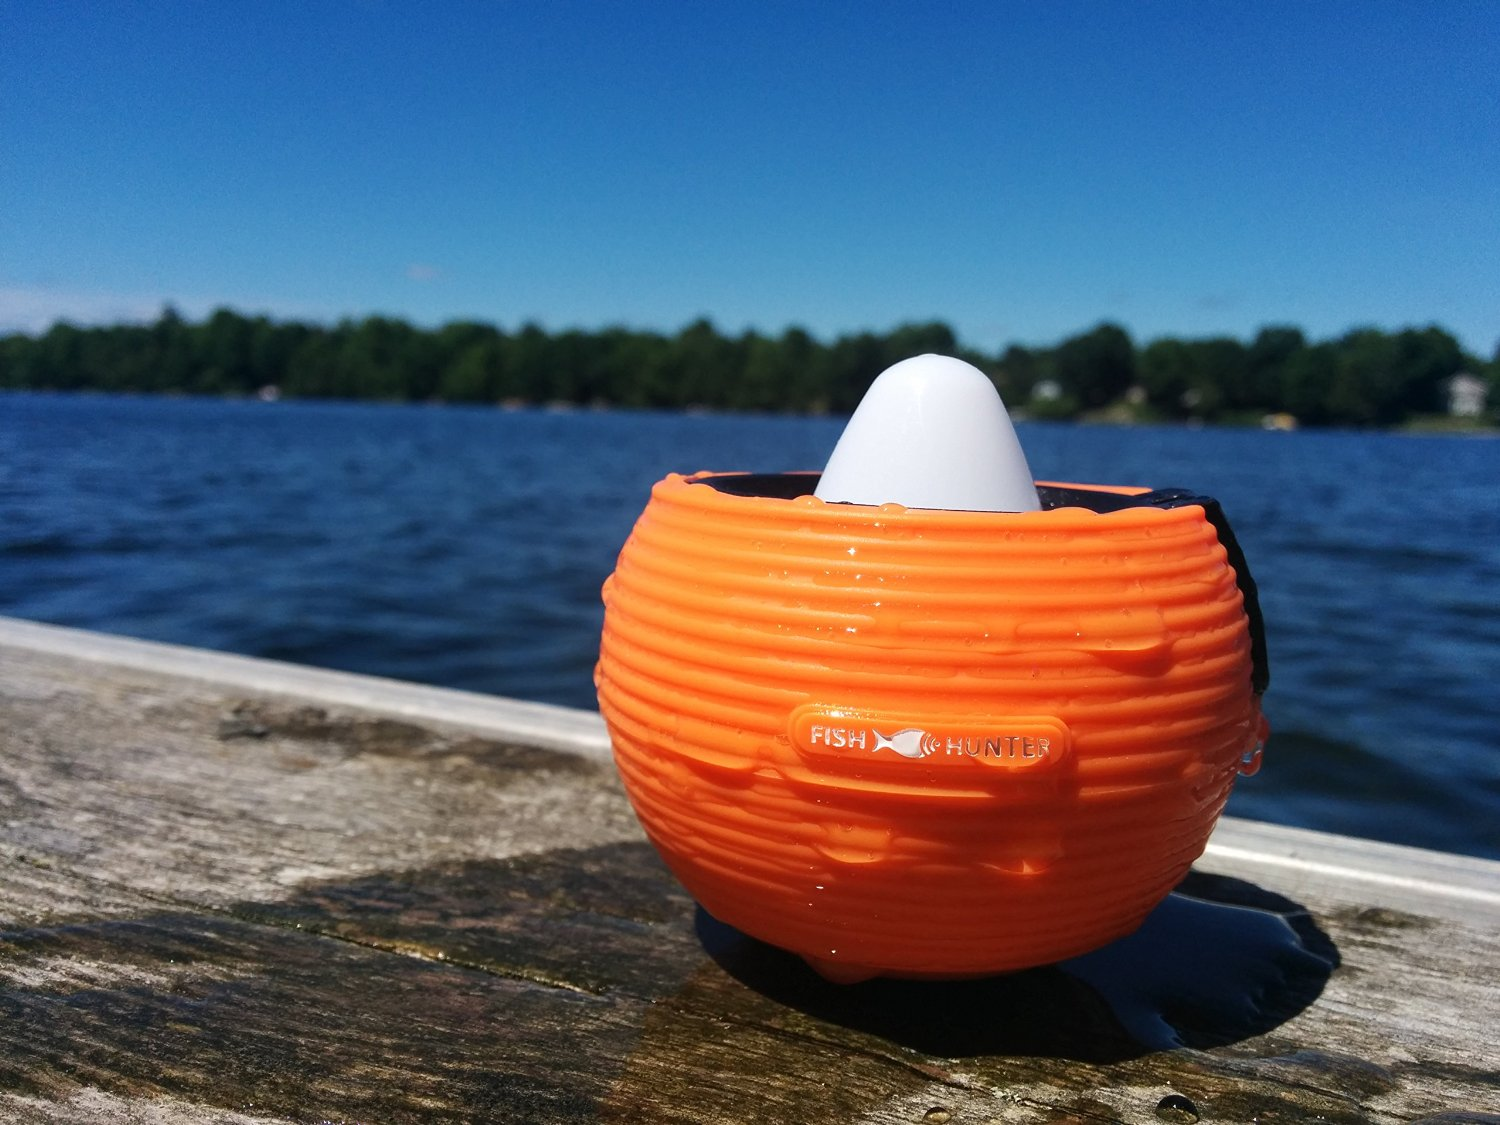 dad will love the fishhunter sonar portable fish finder » new, Fish Finder